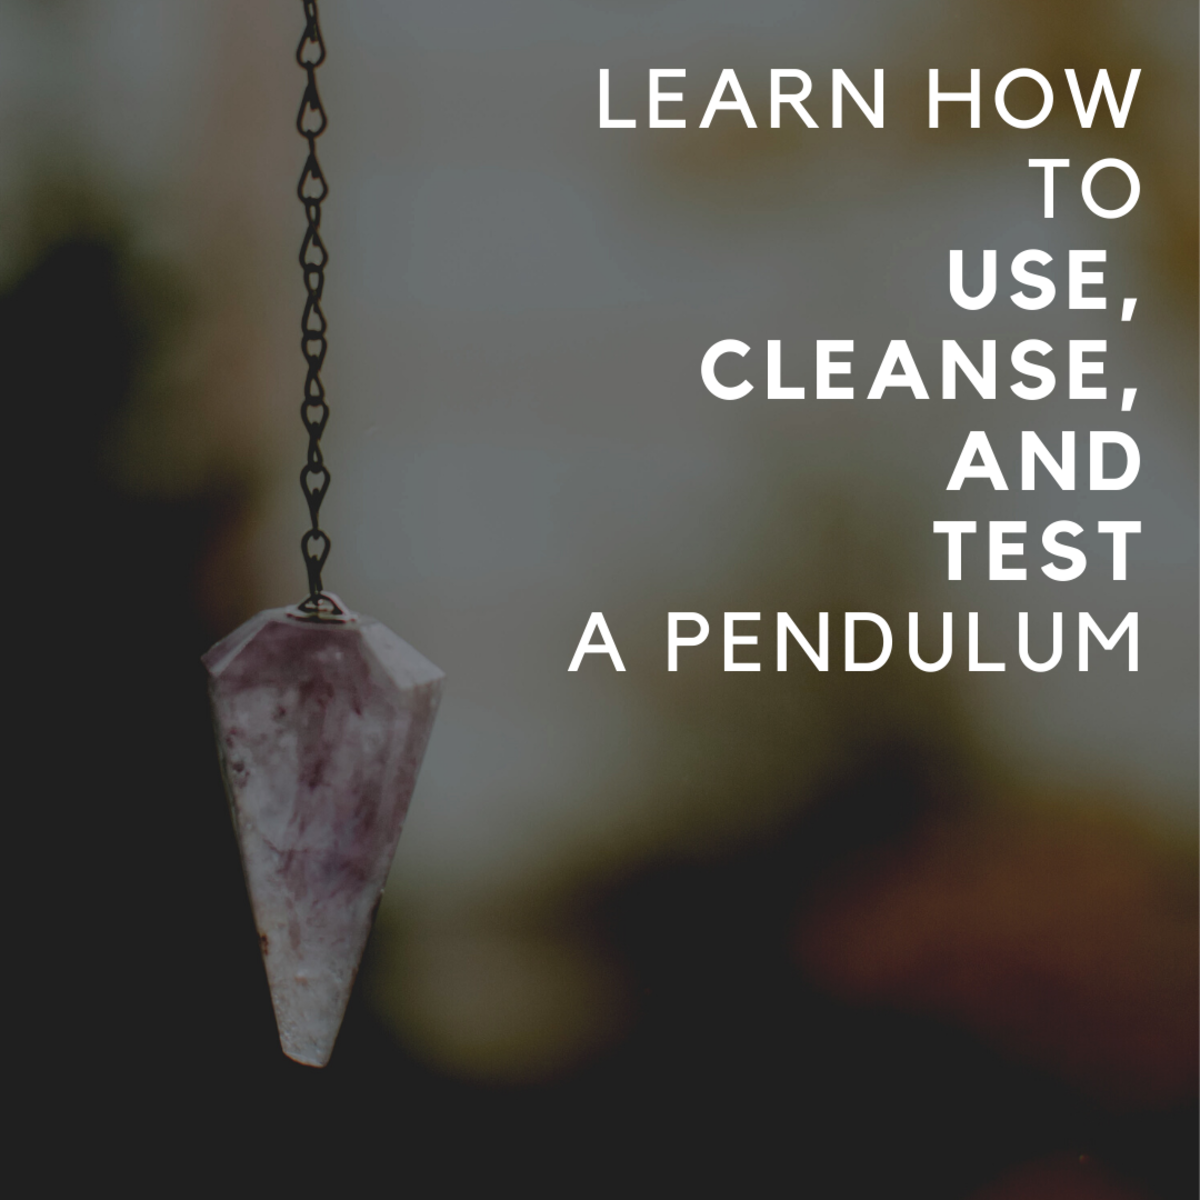 Learn all about pendulums!